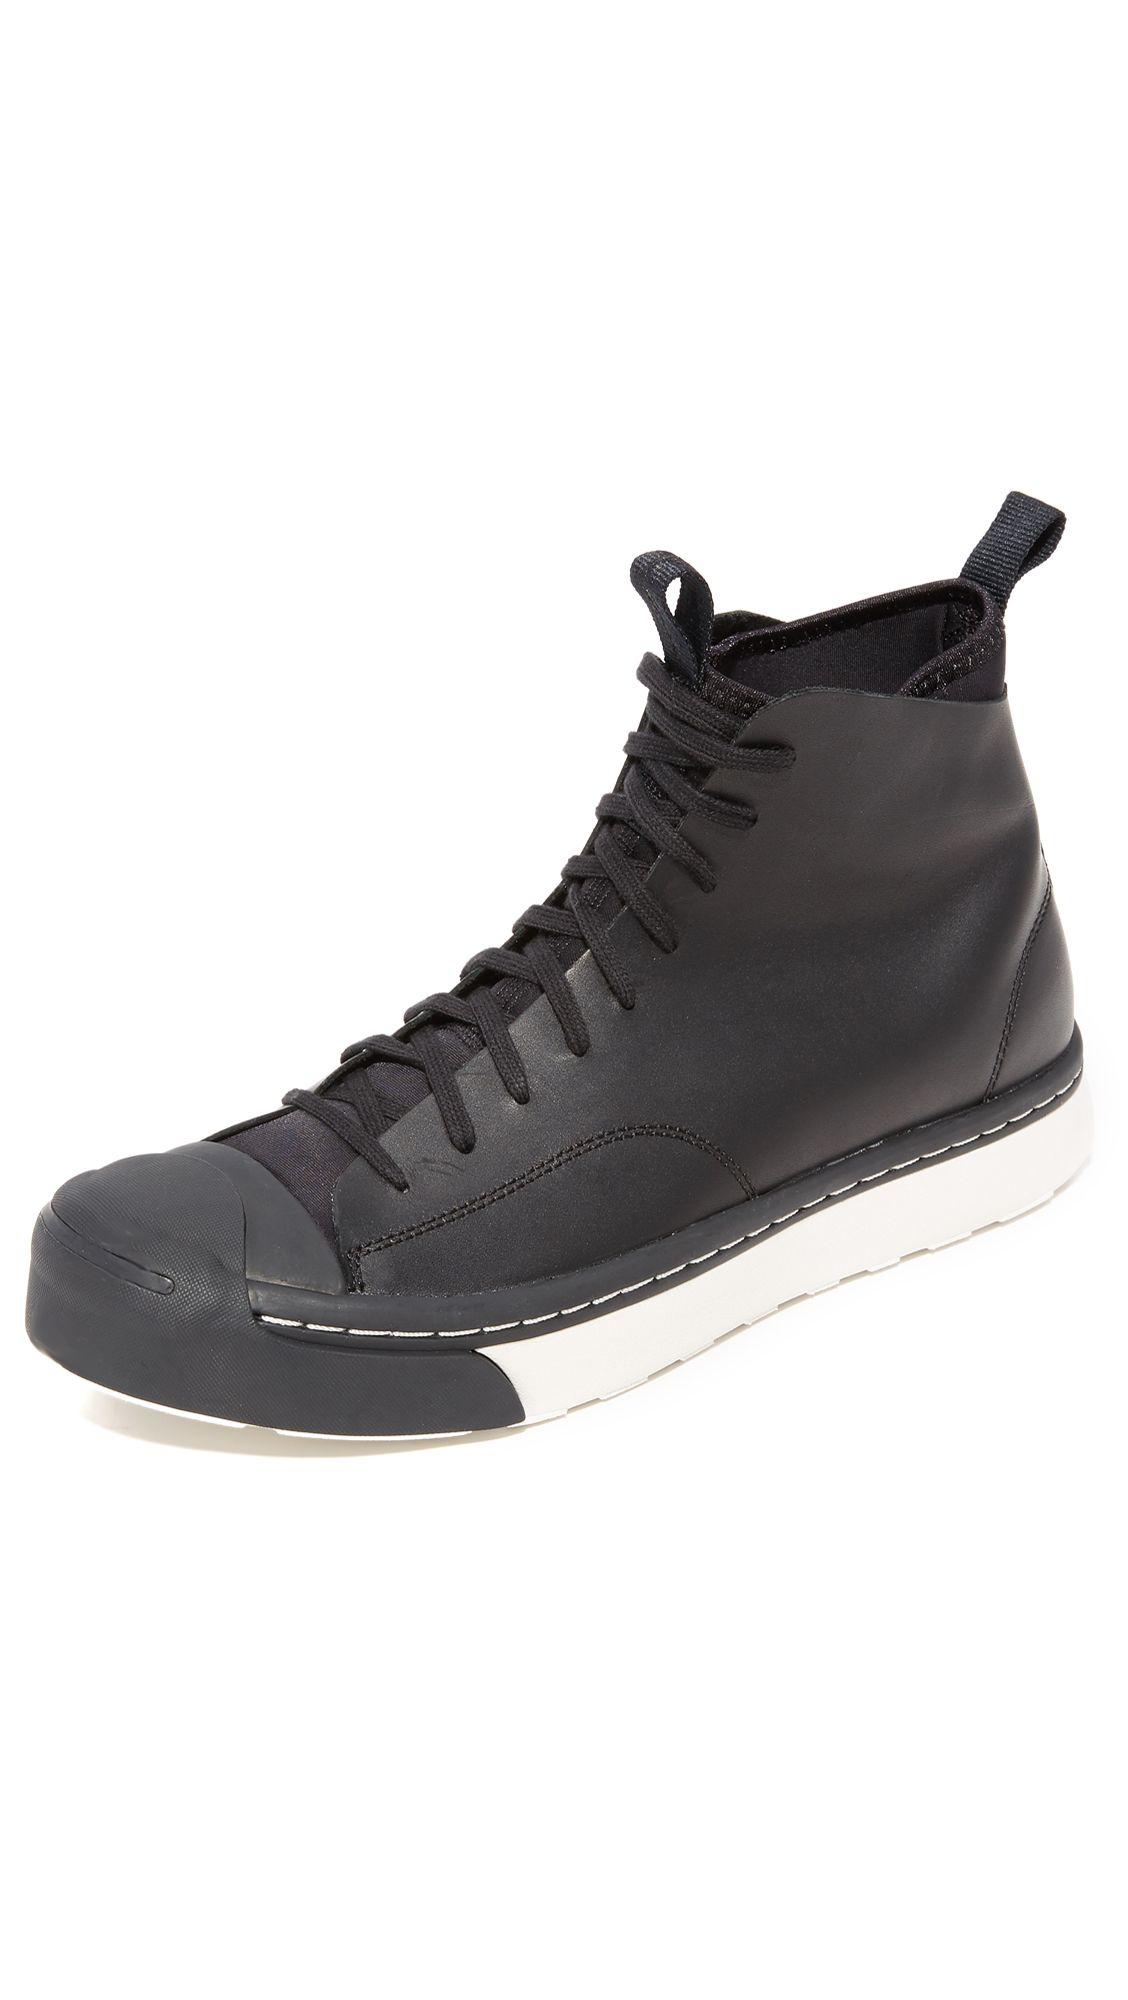 Converse Jack Purcell S Series Sneaker